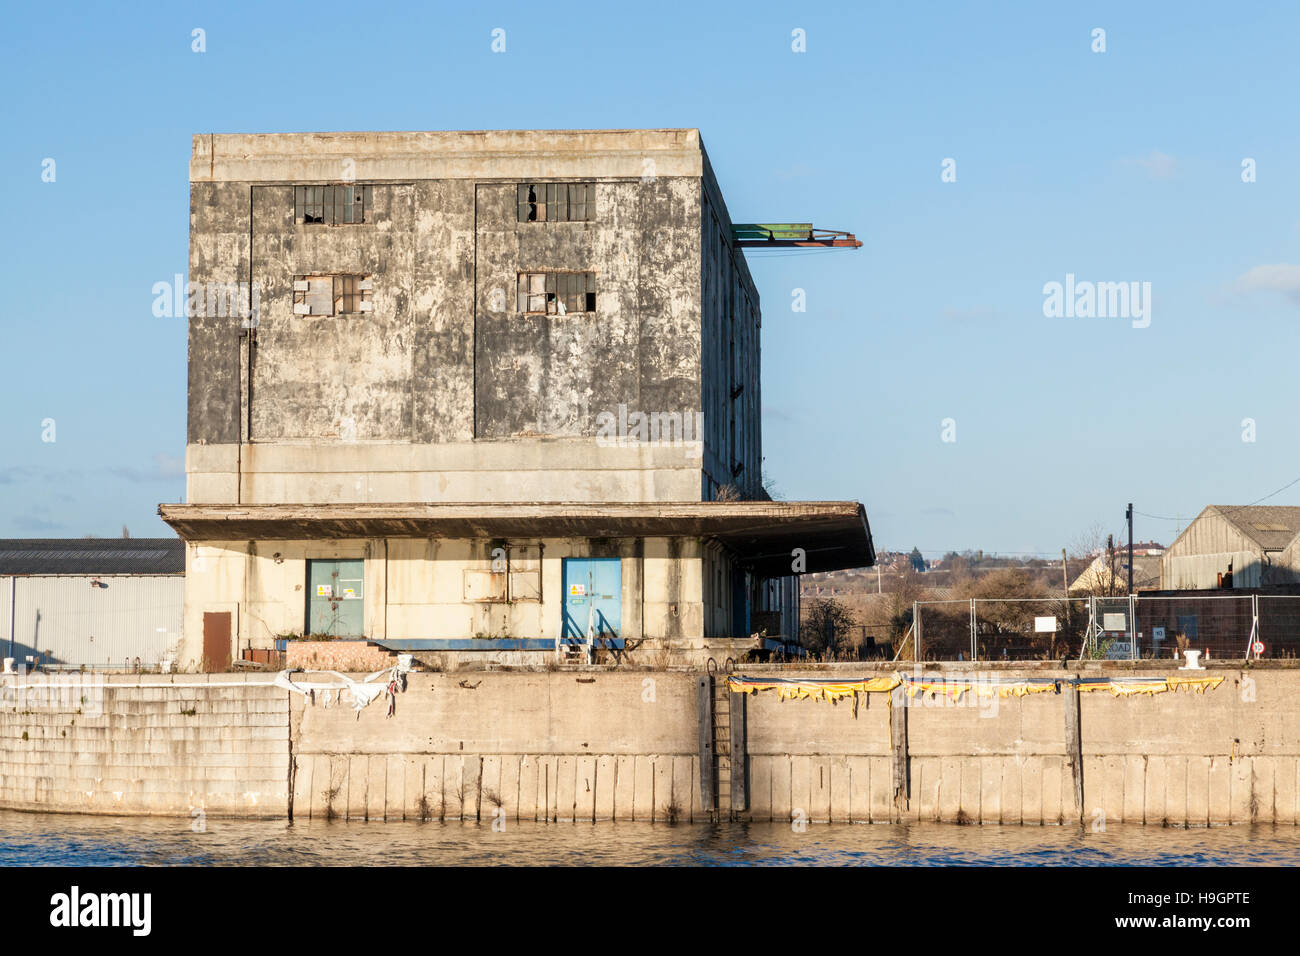 Part of the Trent Lane Depot, an old disused inland port warehouse building on the River Trent, Nottingham, England, - Stock Image